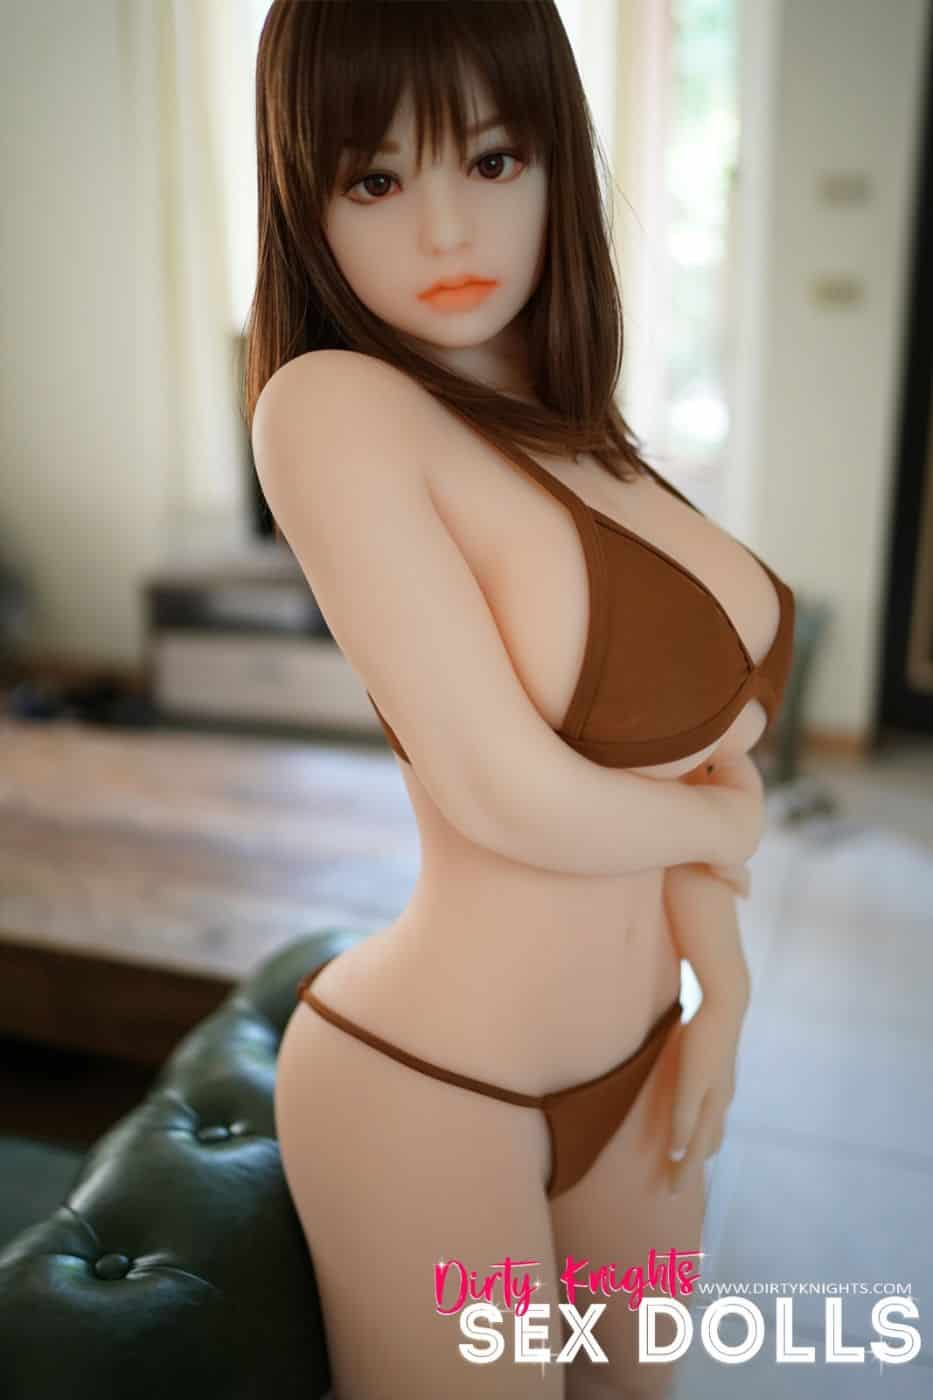 Dirty-Knights-Sex-Dolls-Risako-160cm-Brown-Hair-posing-nude-1 (2)